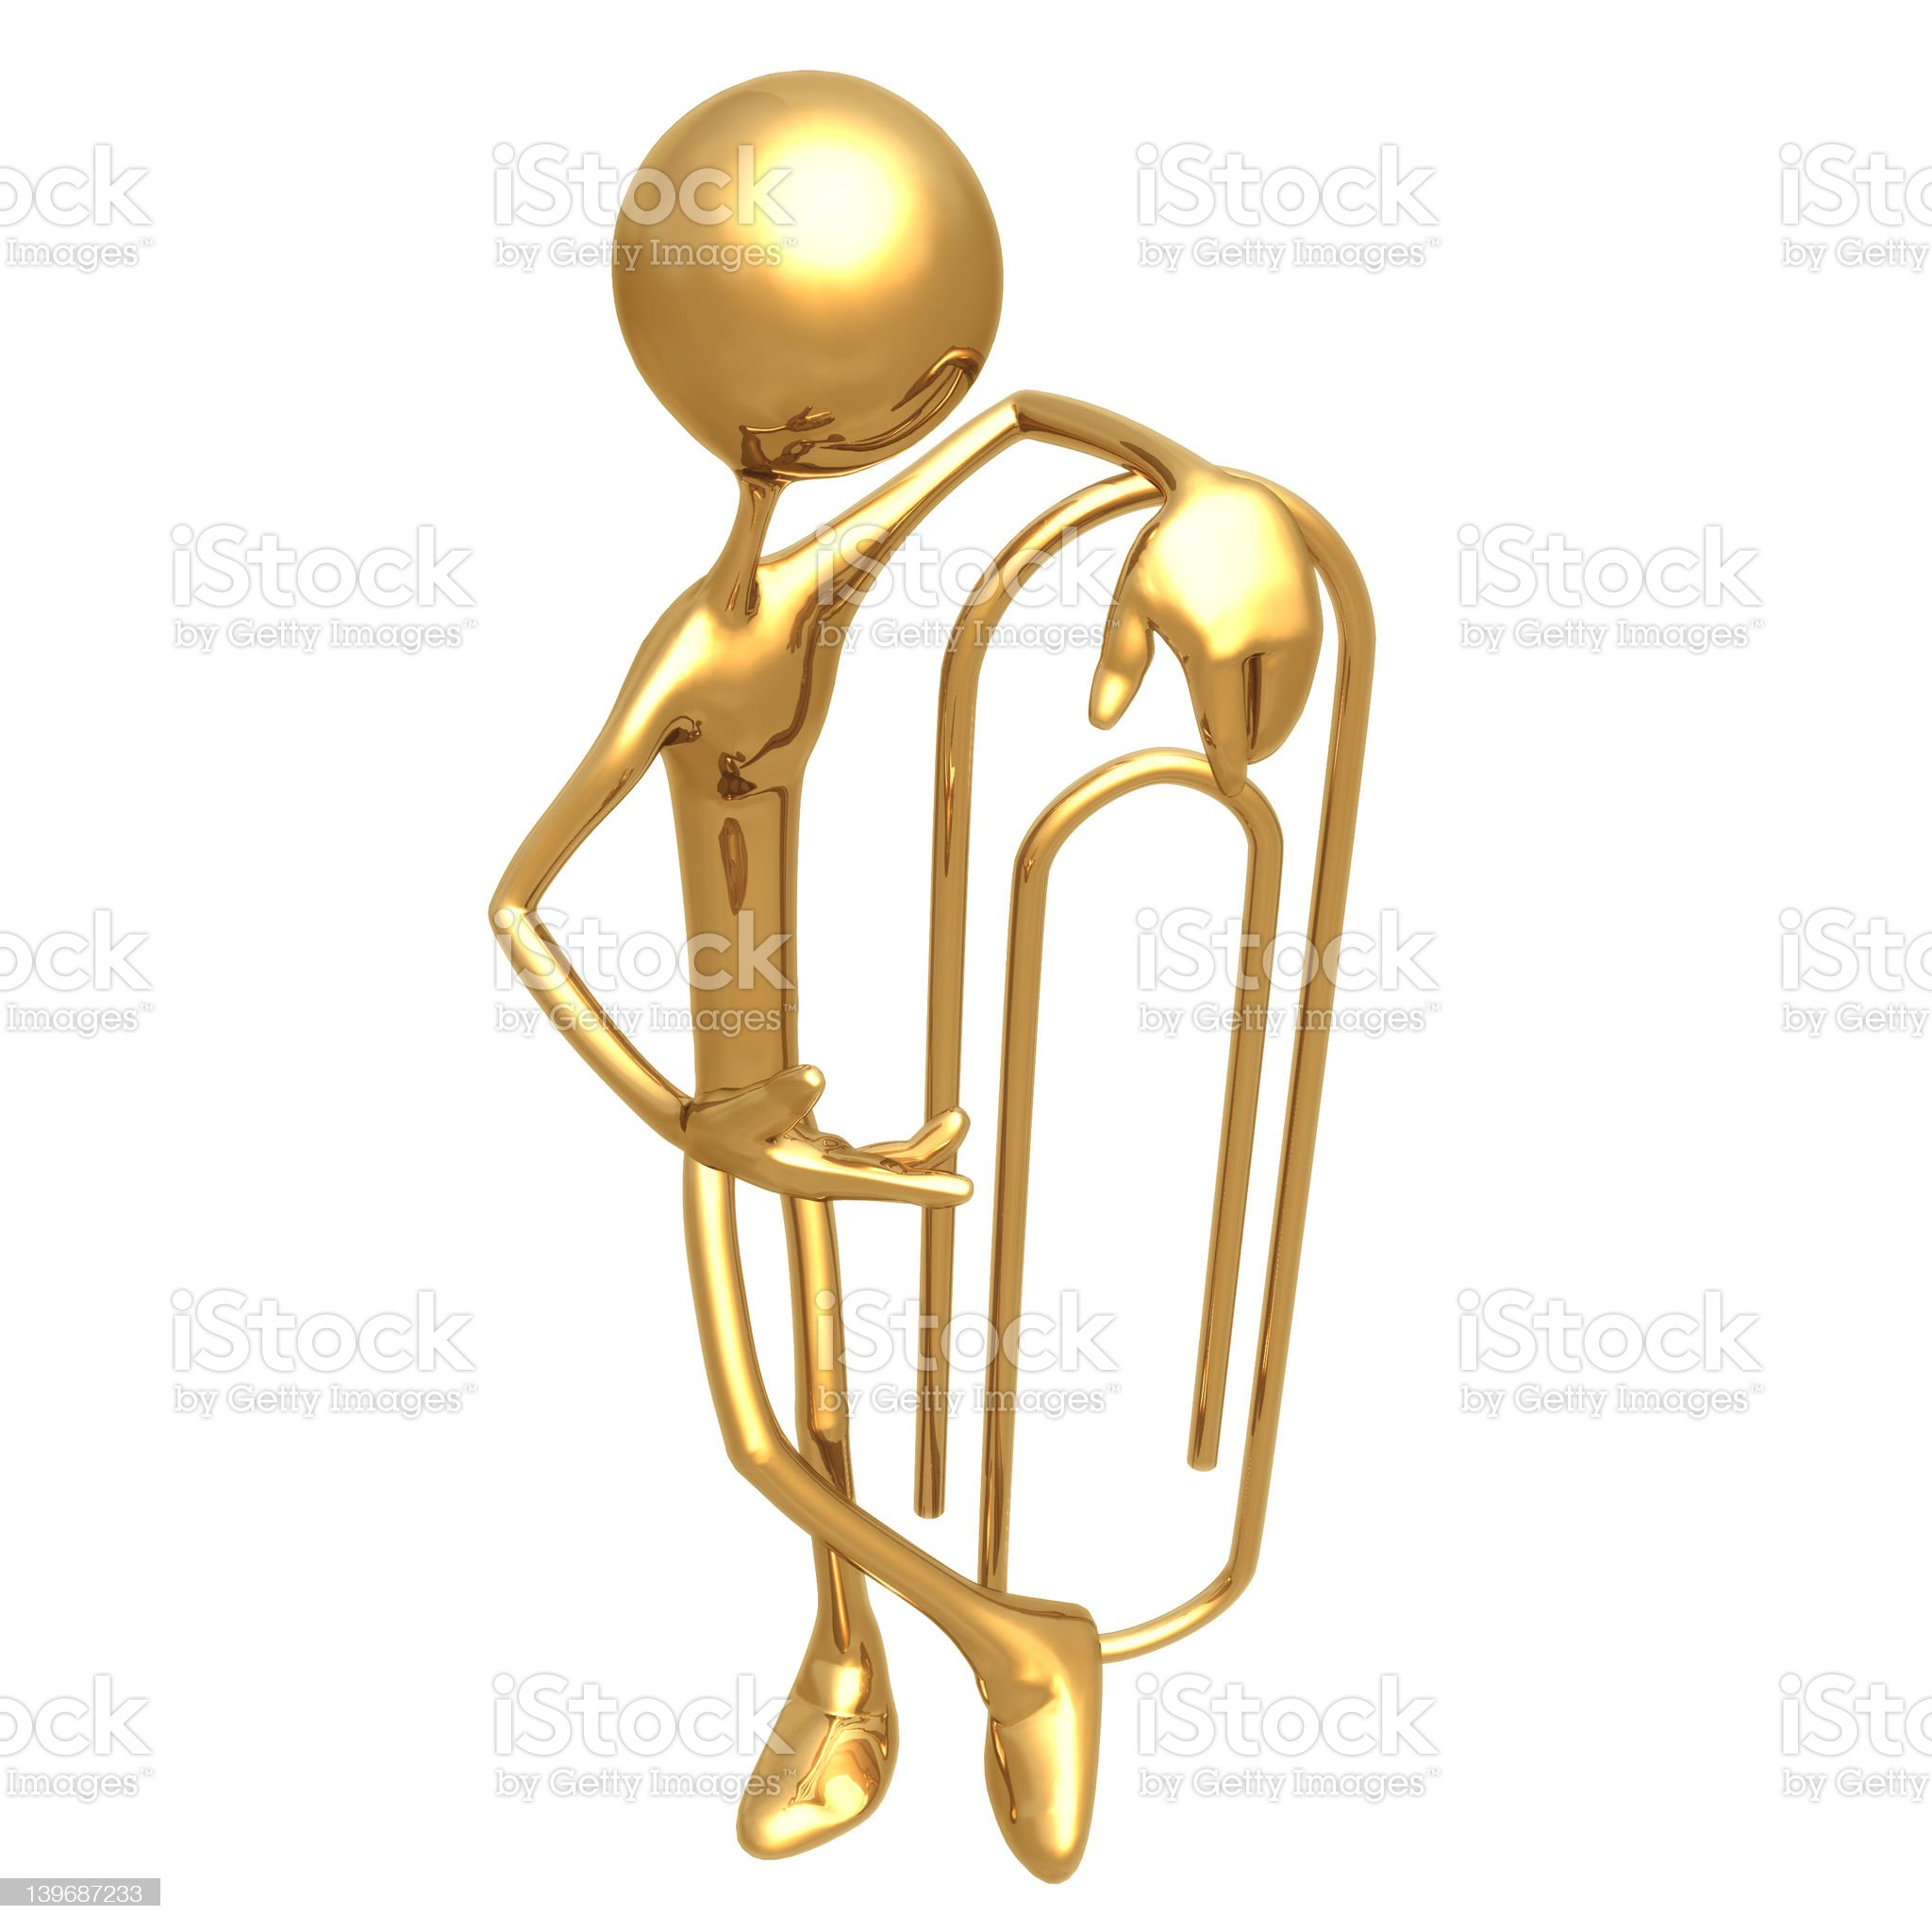 PaperClip 01 royalty-free stock photo